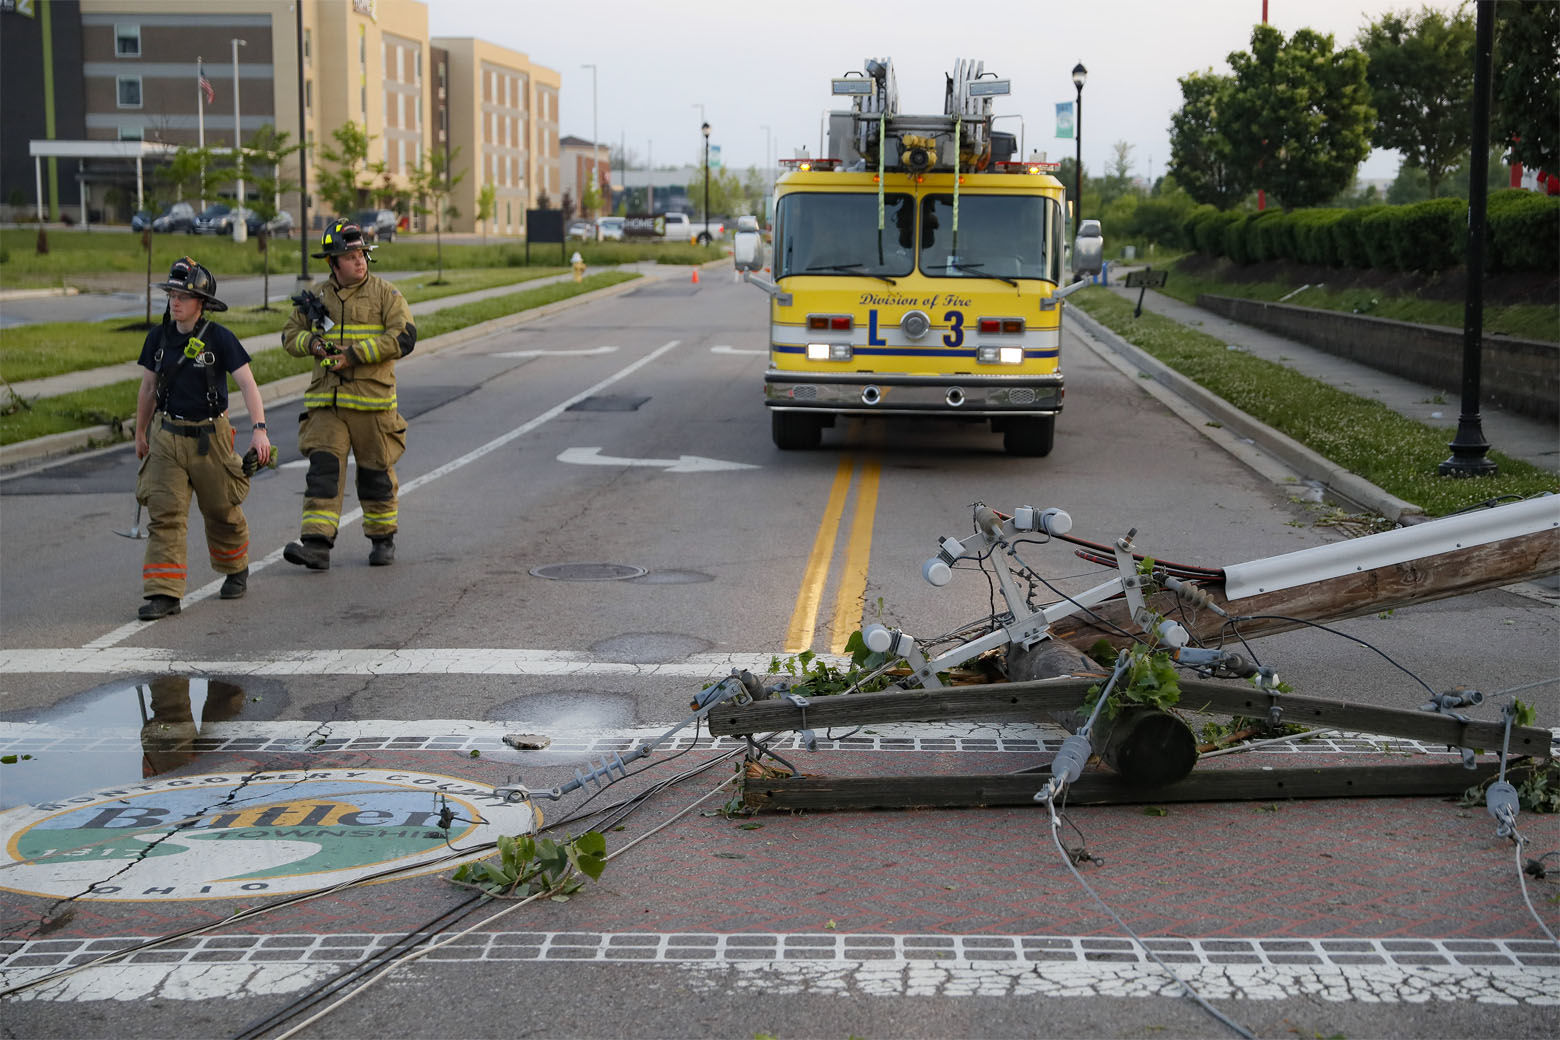 Storm damage litters a residential neighborhood, Tuesday, May 28, 2019, in Vandalia, Ohio. A rapid-fire line of apparent tornadoes tore across Indiana and Ohio overnight, packed so closely together that one crossed the path carved by another. (AP Photo/John Minchillo)